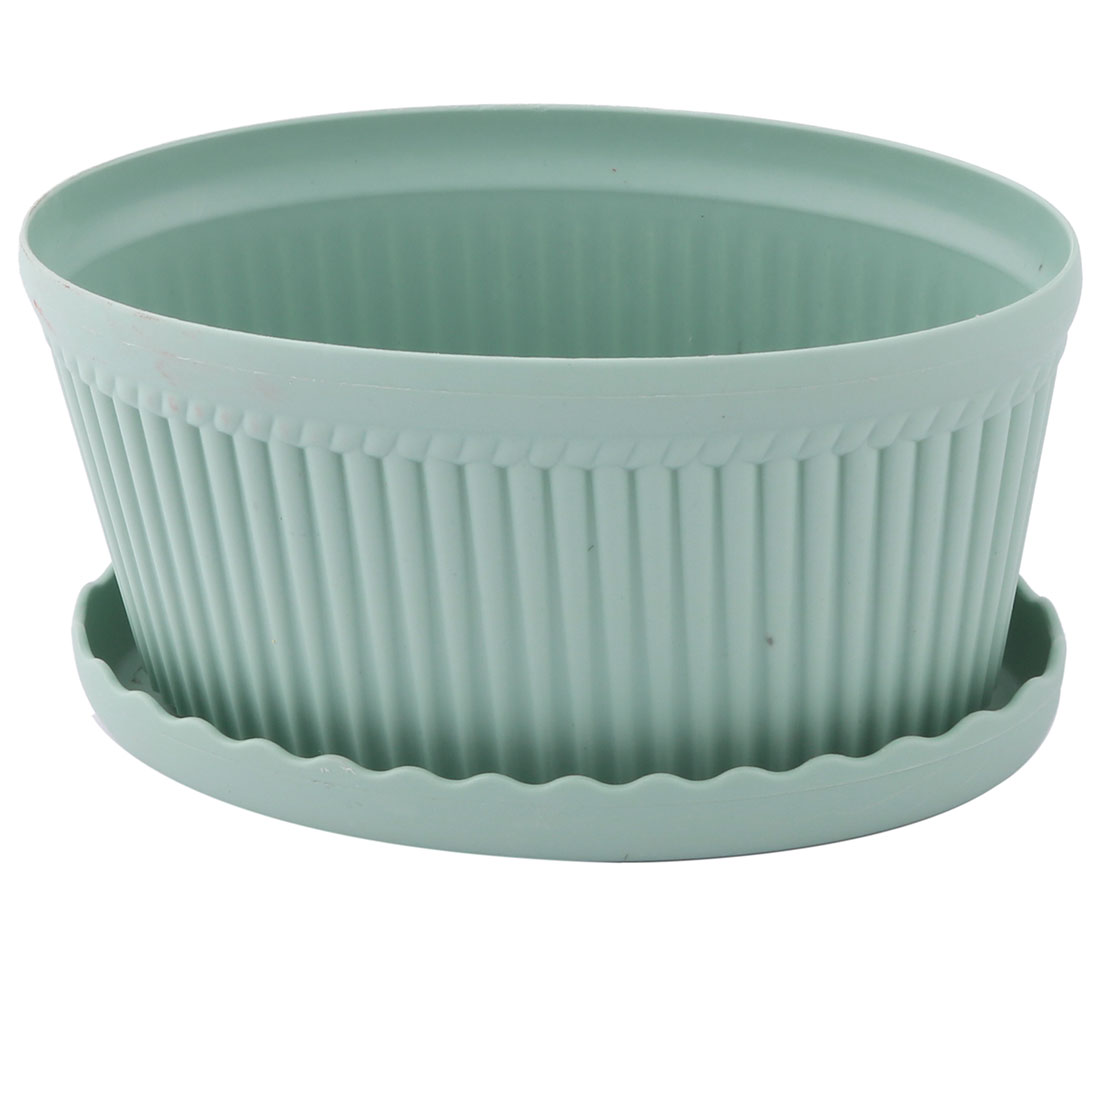 Plastic Oval Flower Cactus Plant Pot Tray Holder Container Ornament Light Green